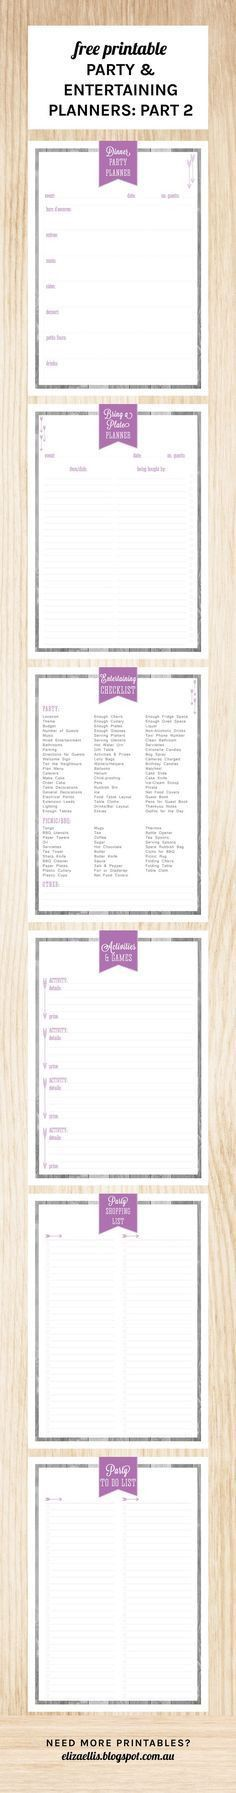 FREE} Party Planner Printable | Free printable party, Party ...